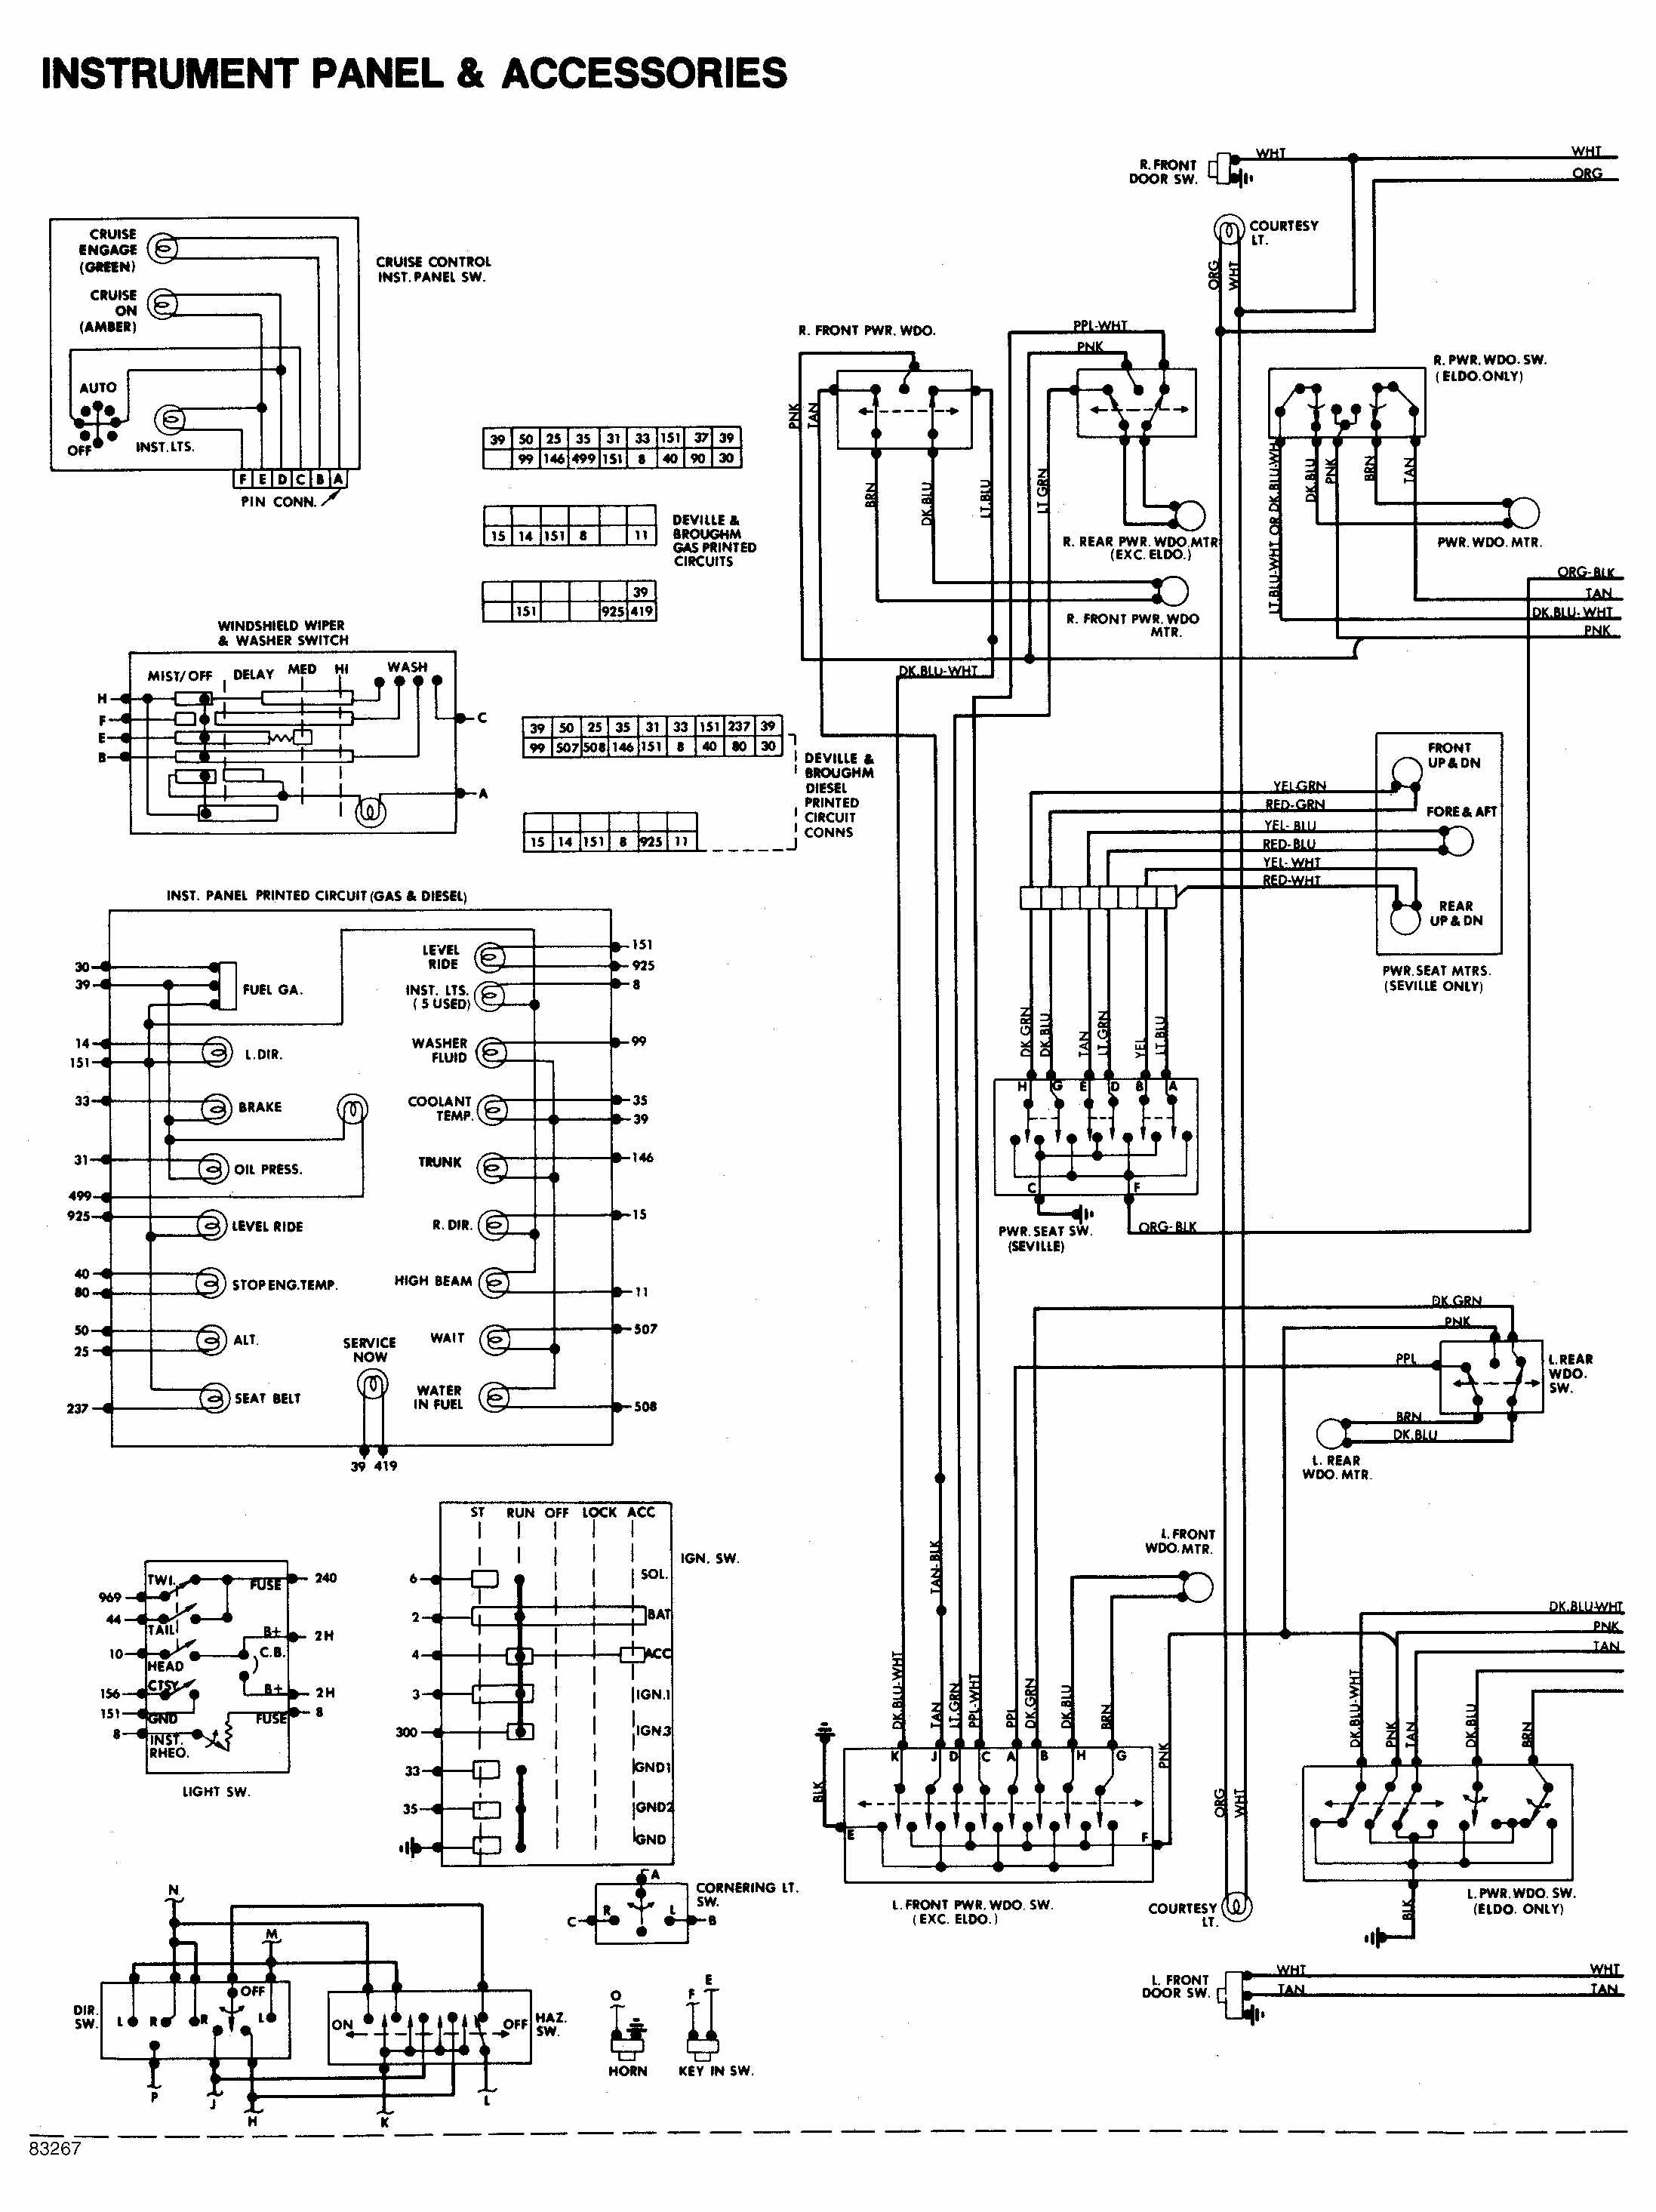 instrument panel and accessories wiring diagram of 1984 cadillac deville chevy diagrams 2001 cadillac deville wiring diagram at gsmx.co